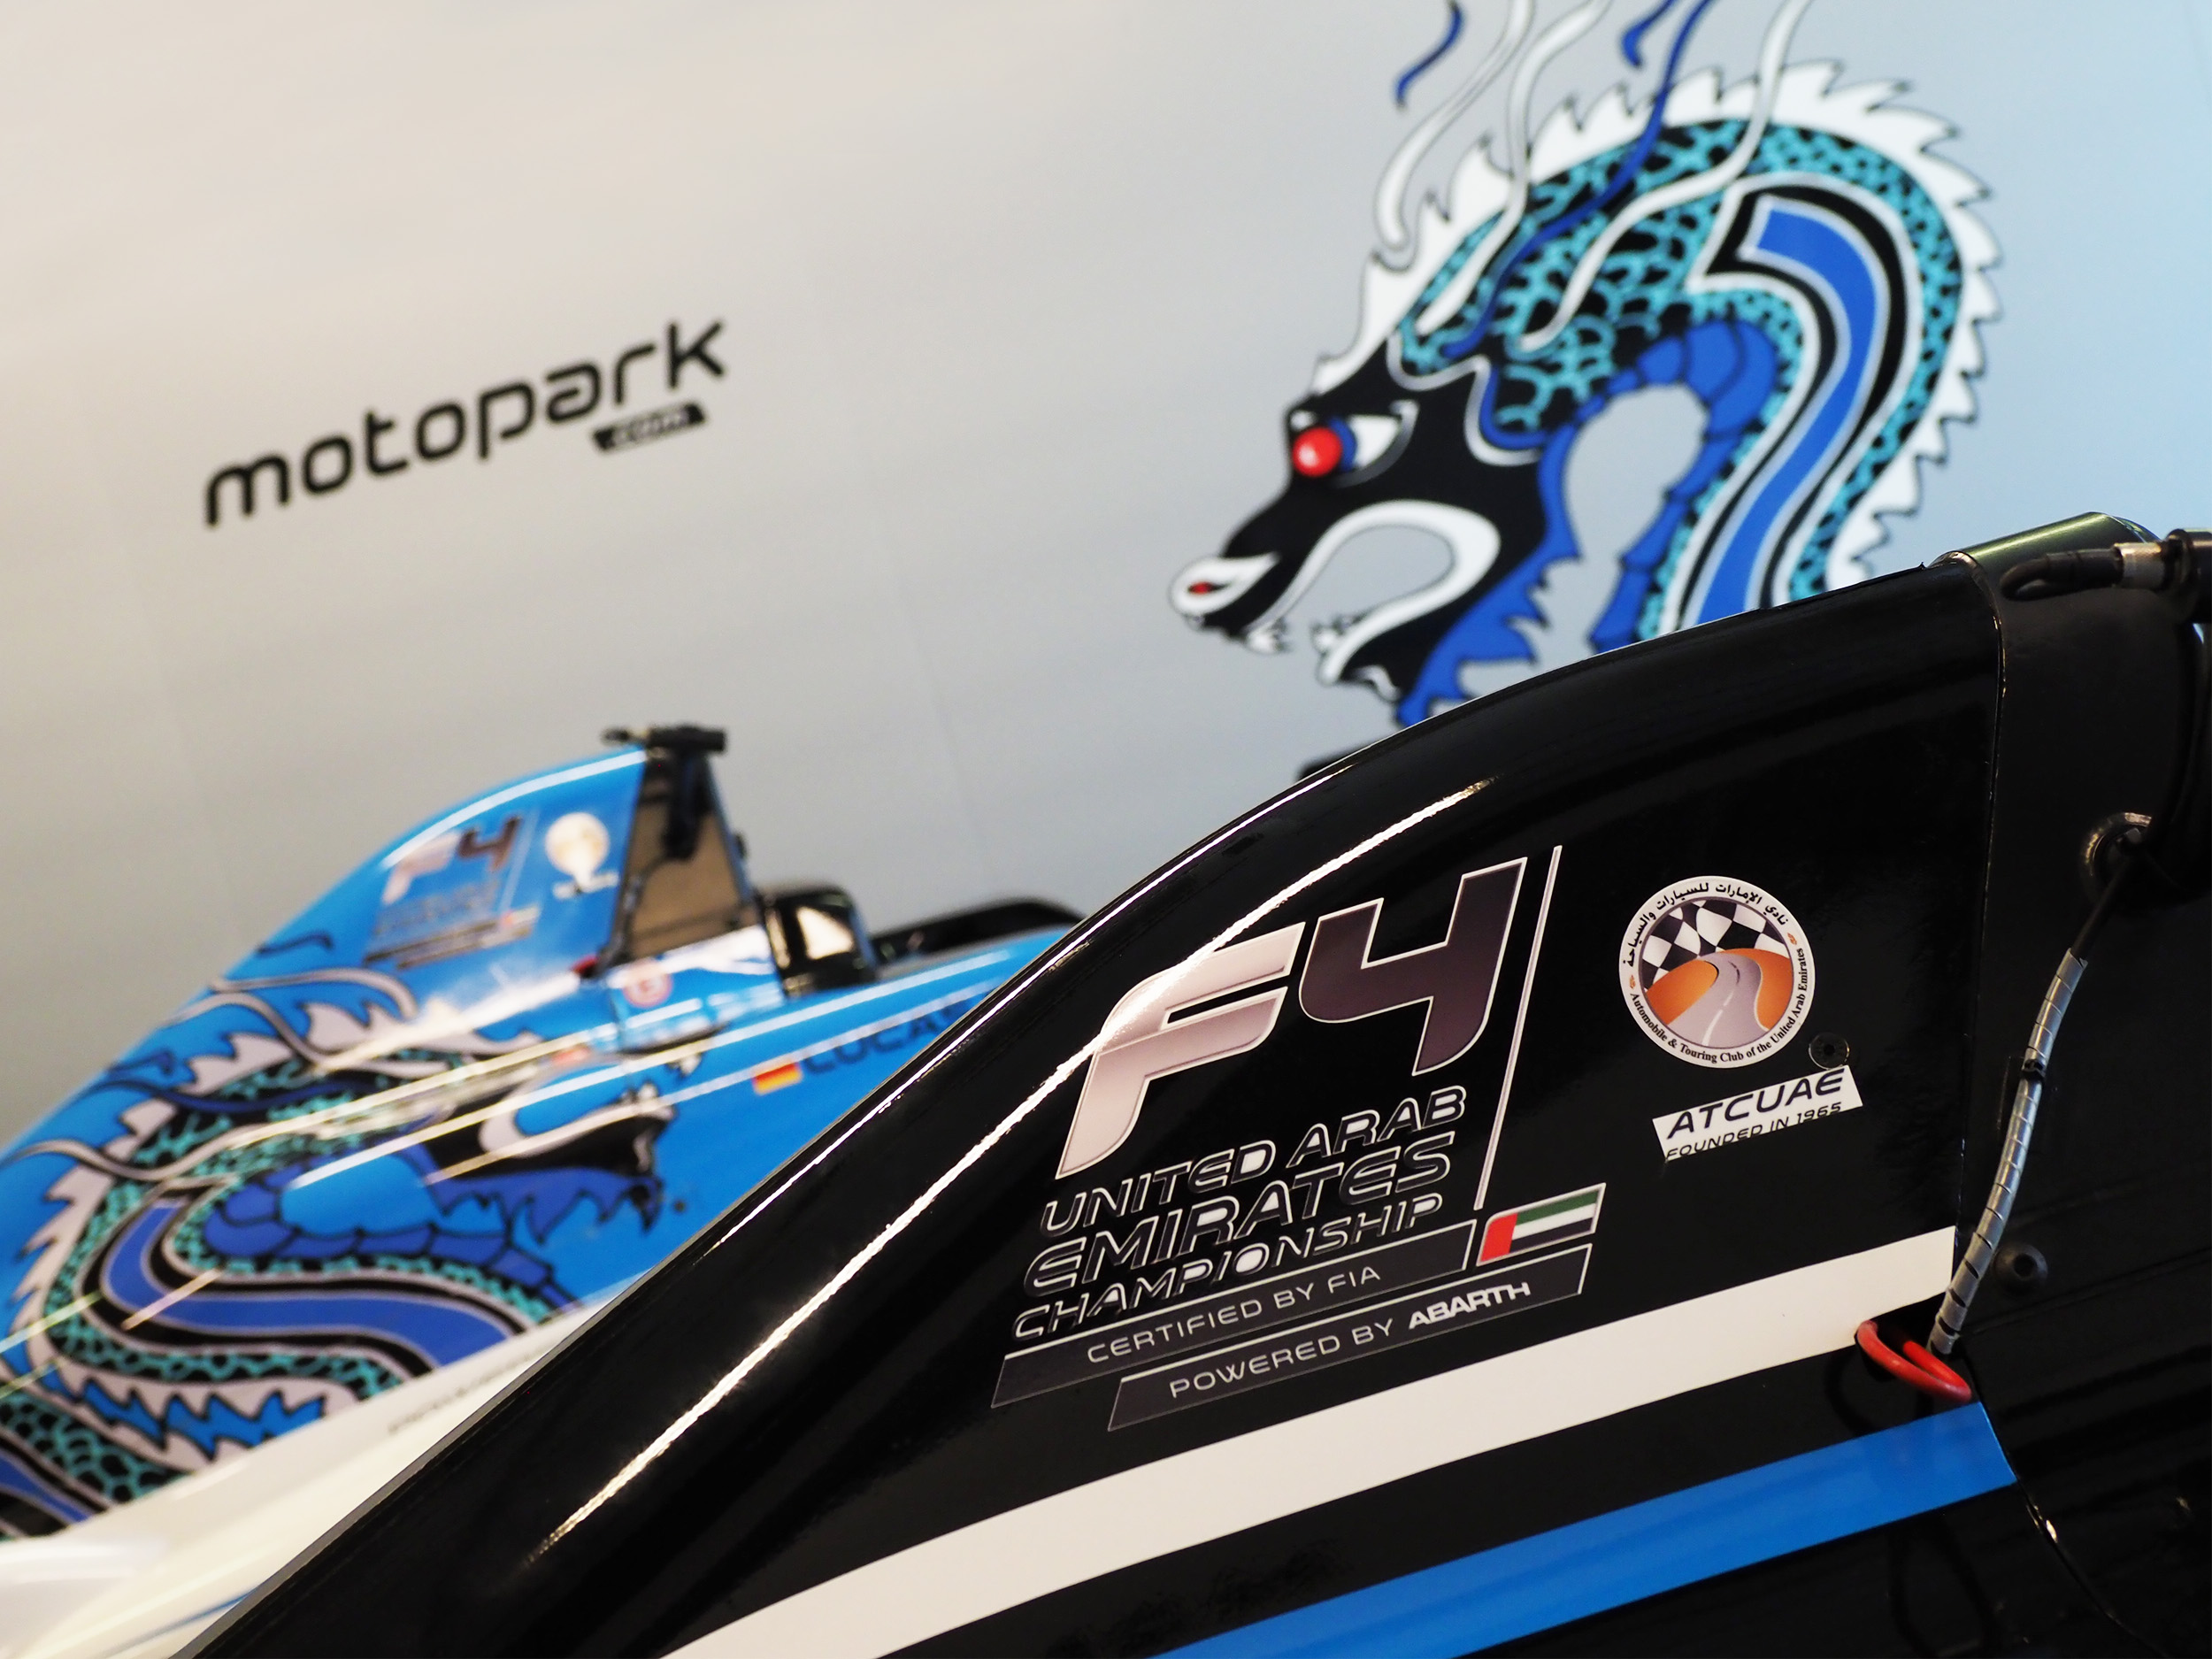 [TEAM NEWS] DRAGON F4 JOINS FORCES WITH TEAM MOTOPARK FOR F4UAE ASSAULT